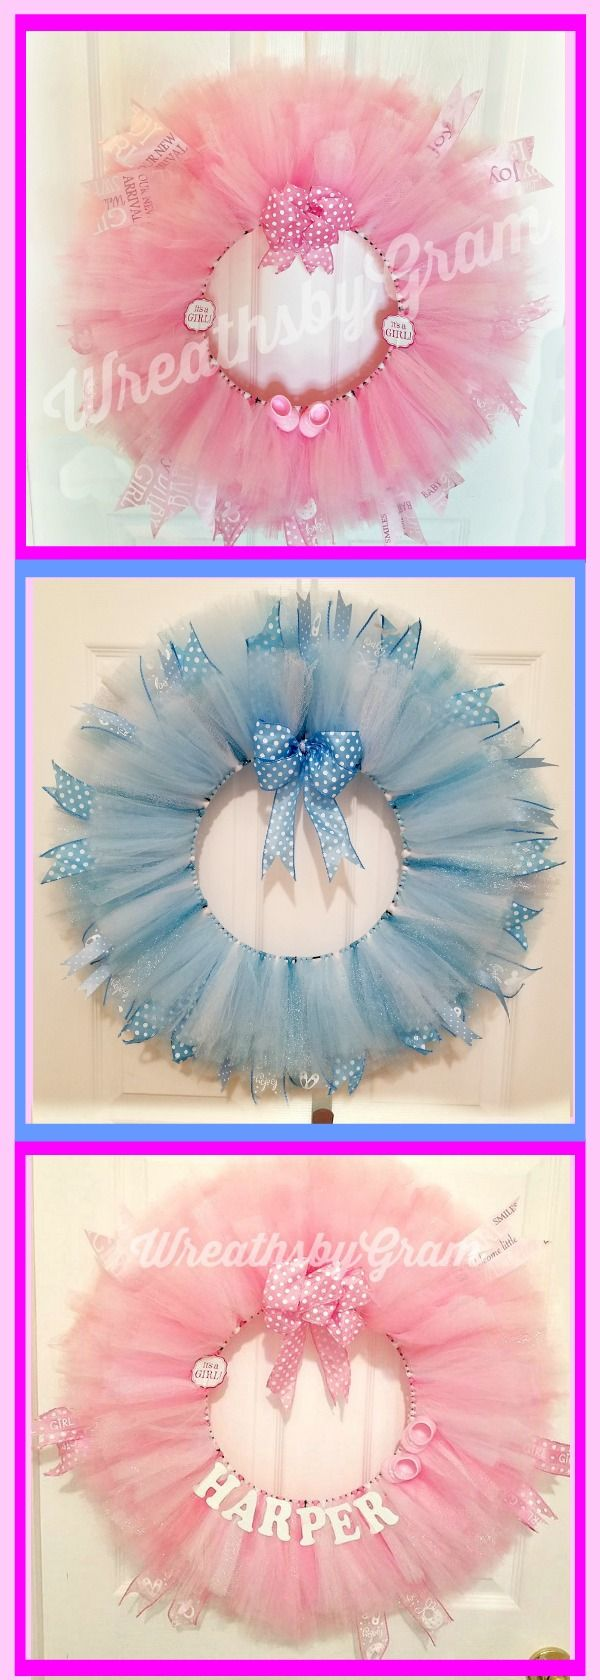 Baby shower wreath in varying shades of pink/white and blue/white. Name can be added. Baby shower ideas; baby shower decorations; baby shower gifts; baby shower pink and gold; baby shower princess; baby shower boy; baby shower girl; baby shower themes; baby shower coed; boho; shabby chic